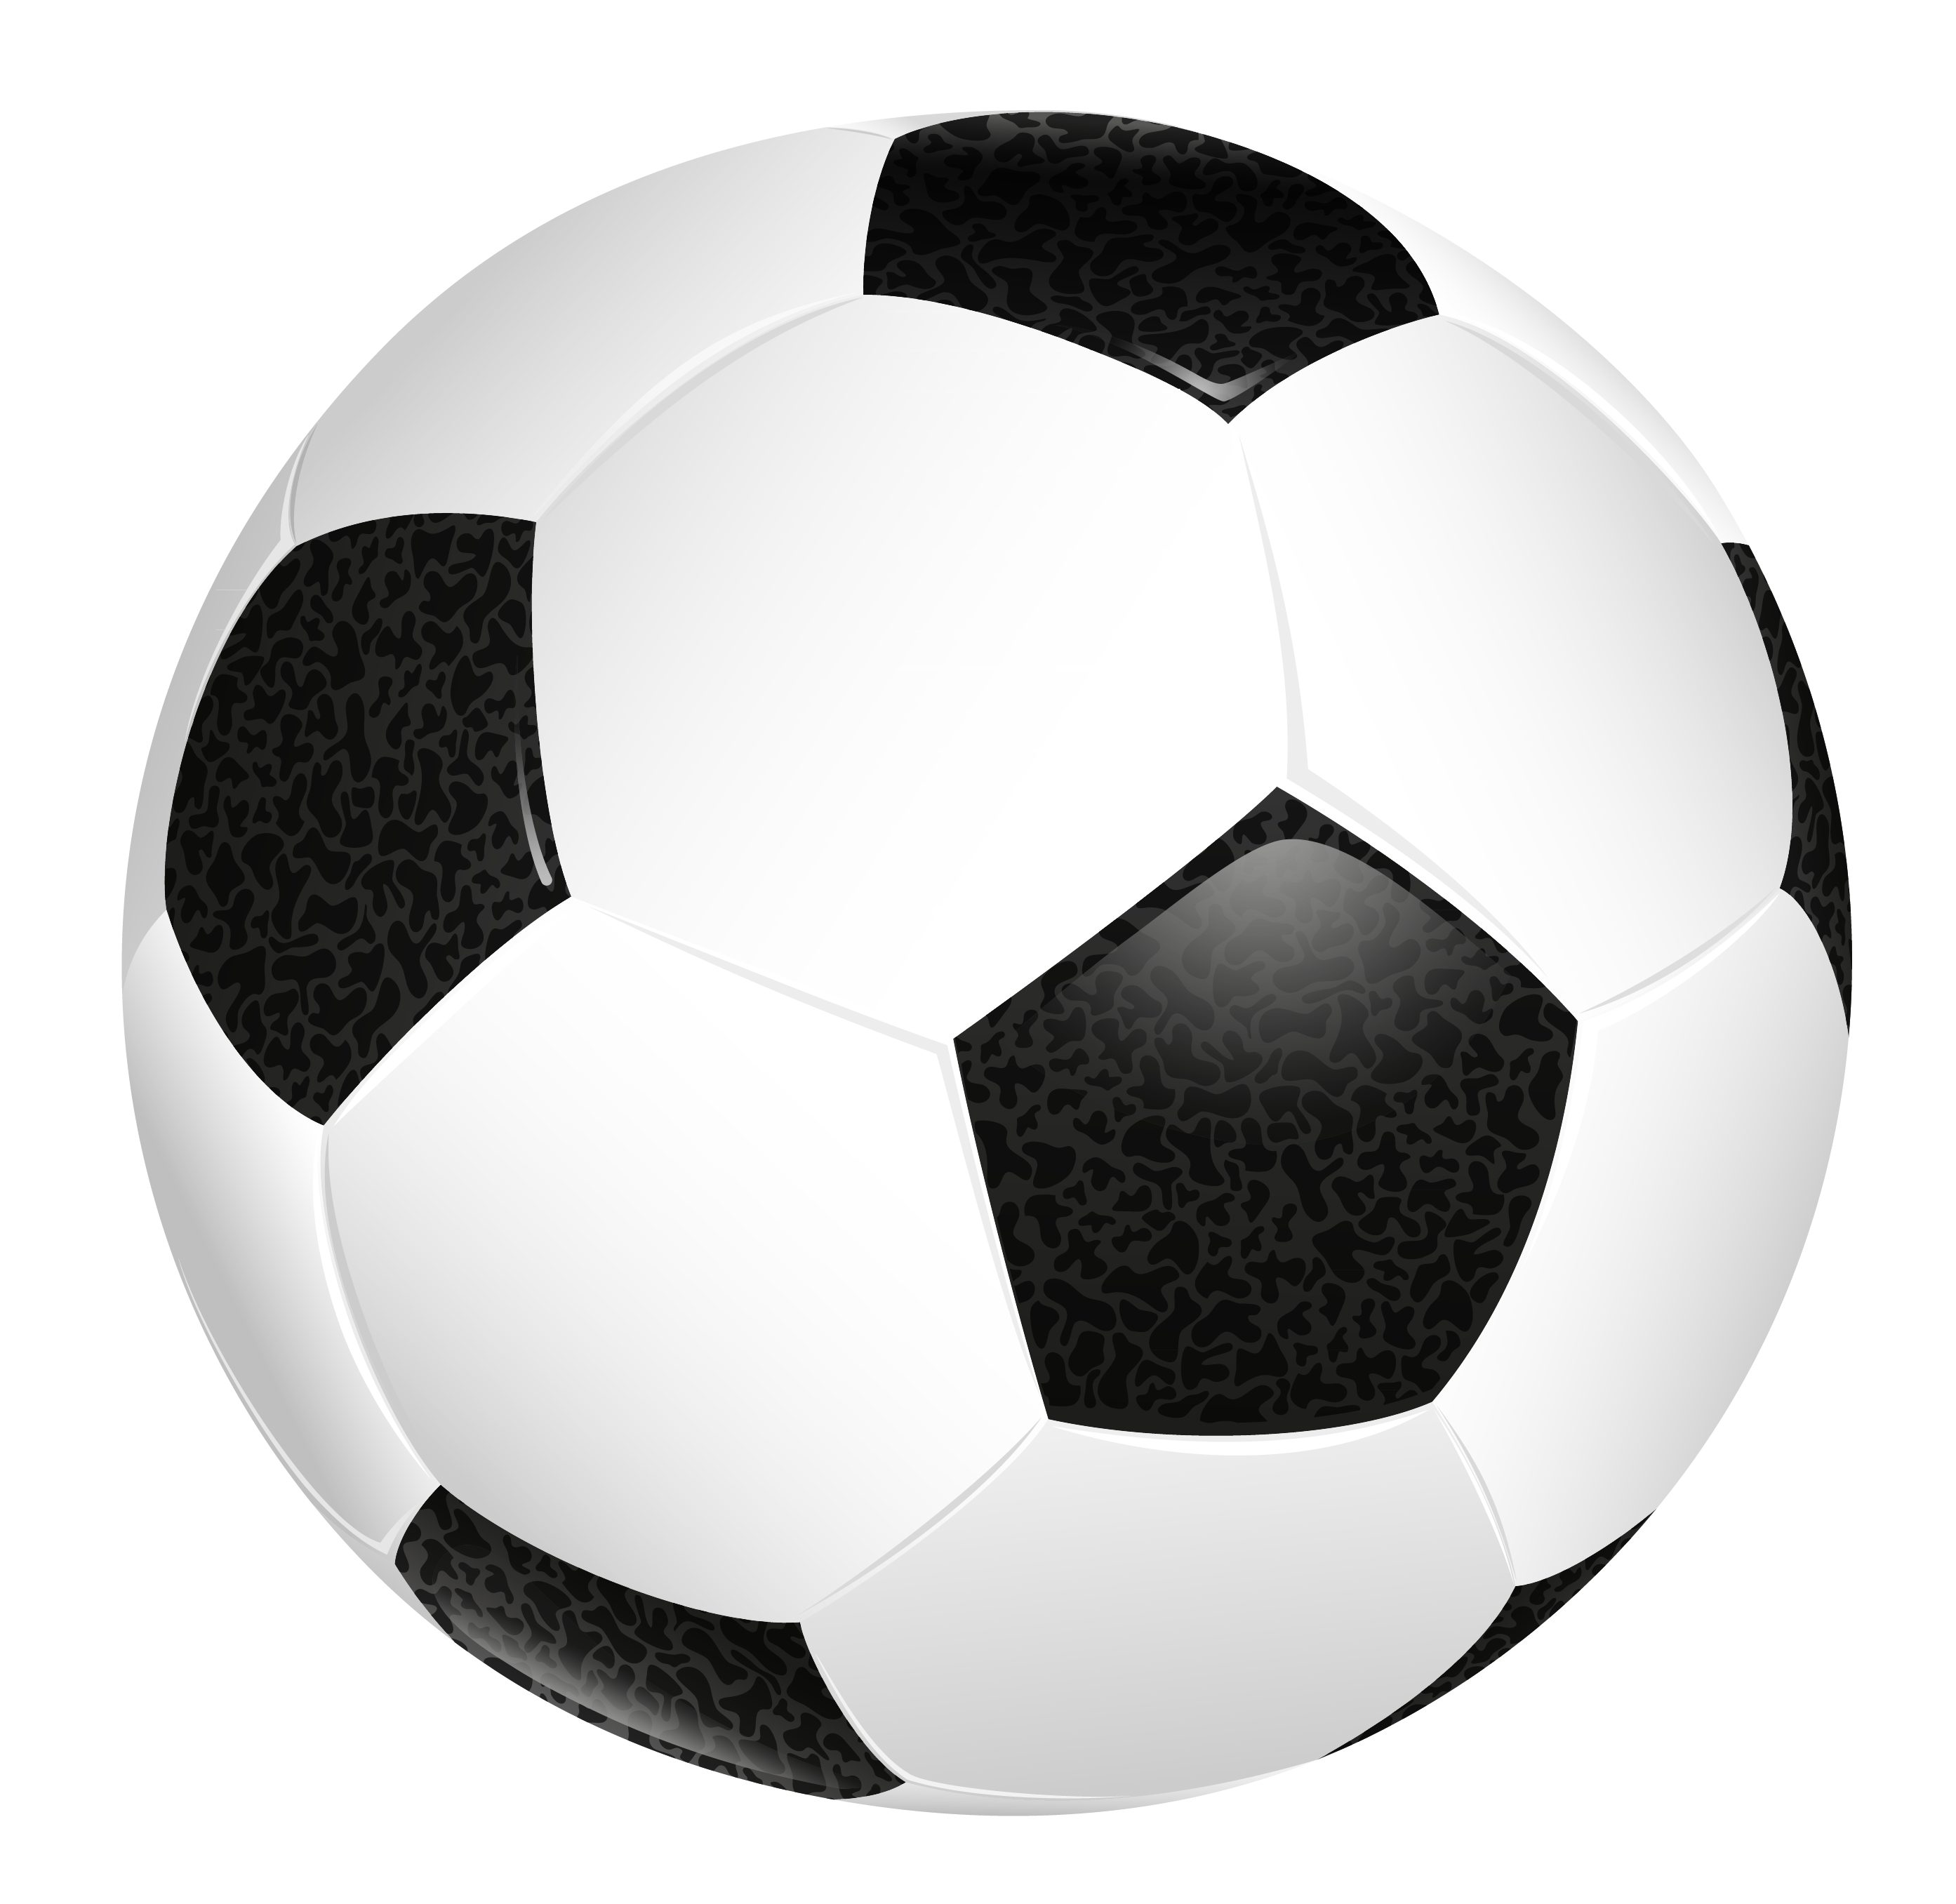 Soccer ball clear background